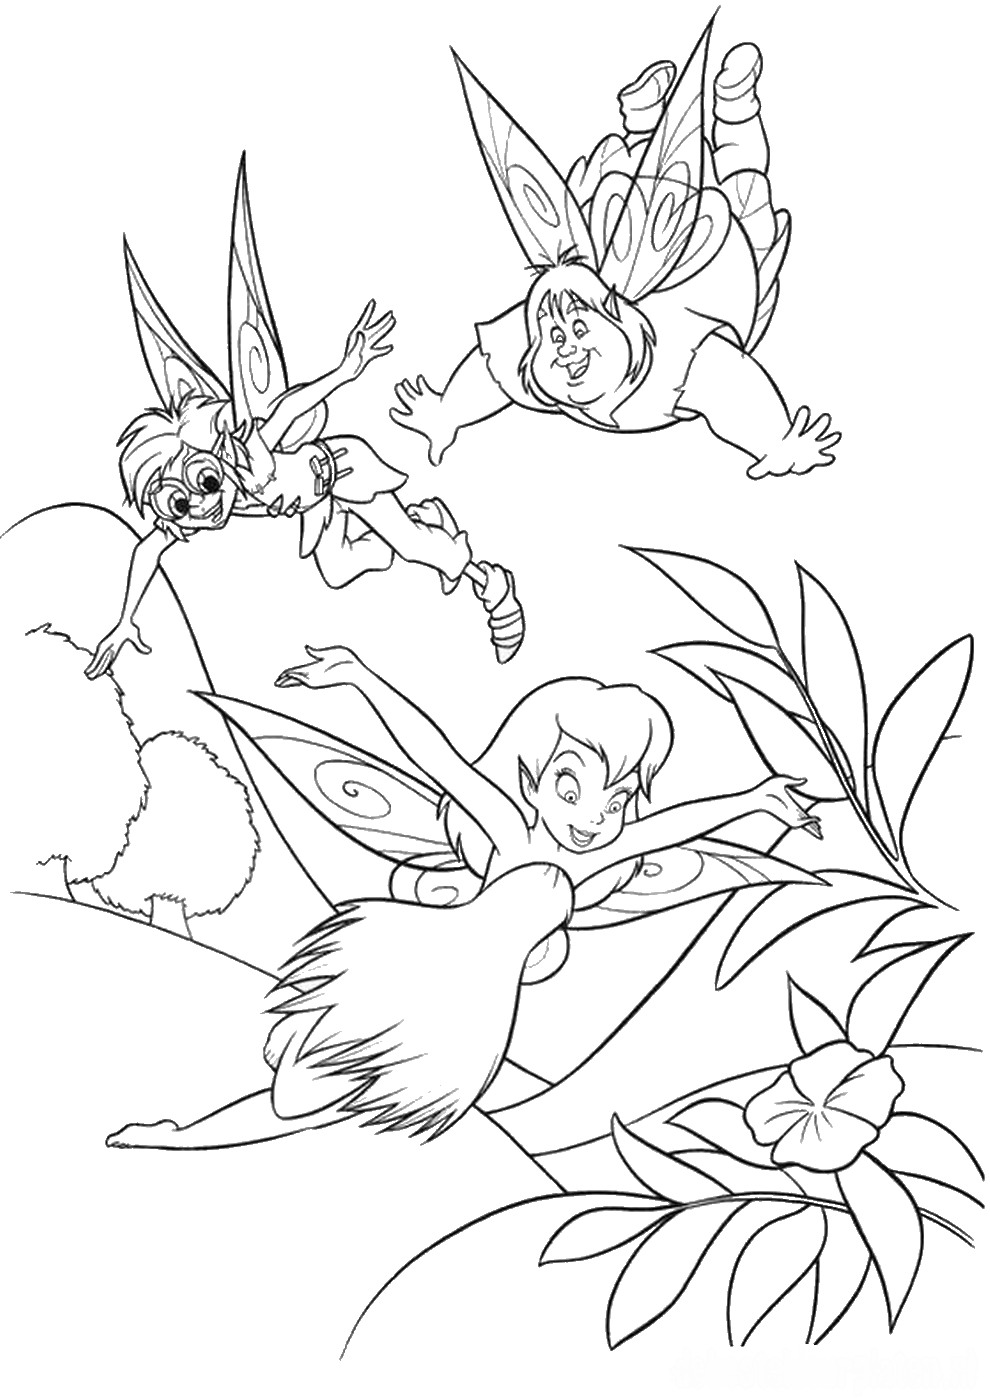 tinkerbell coloring sheets tinkerbell coloring pages tinkerbell sheets coloring